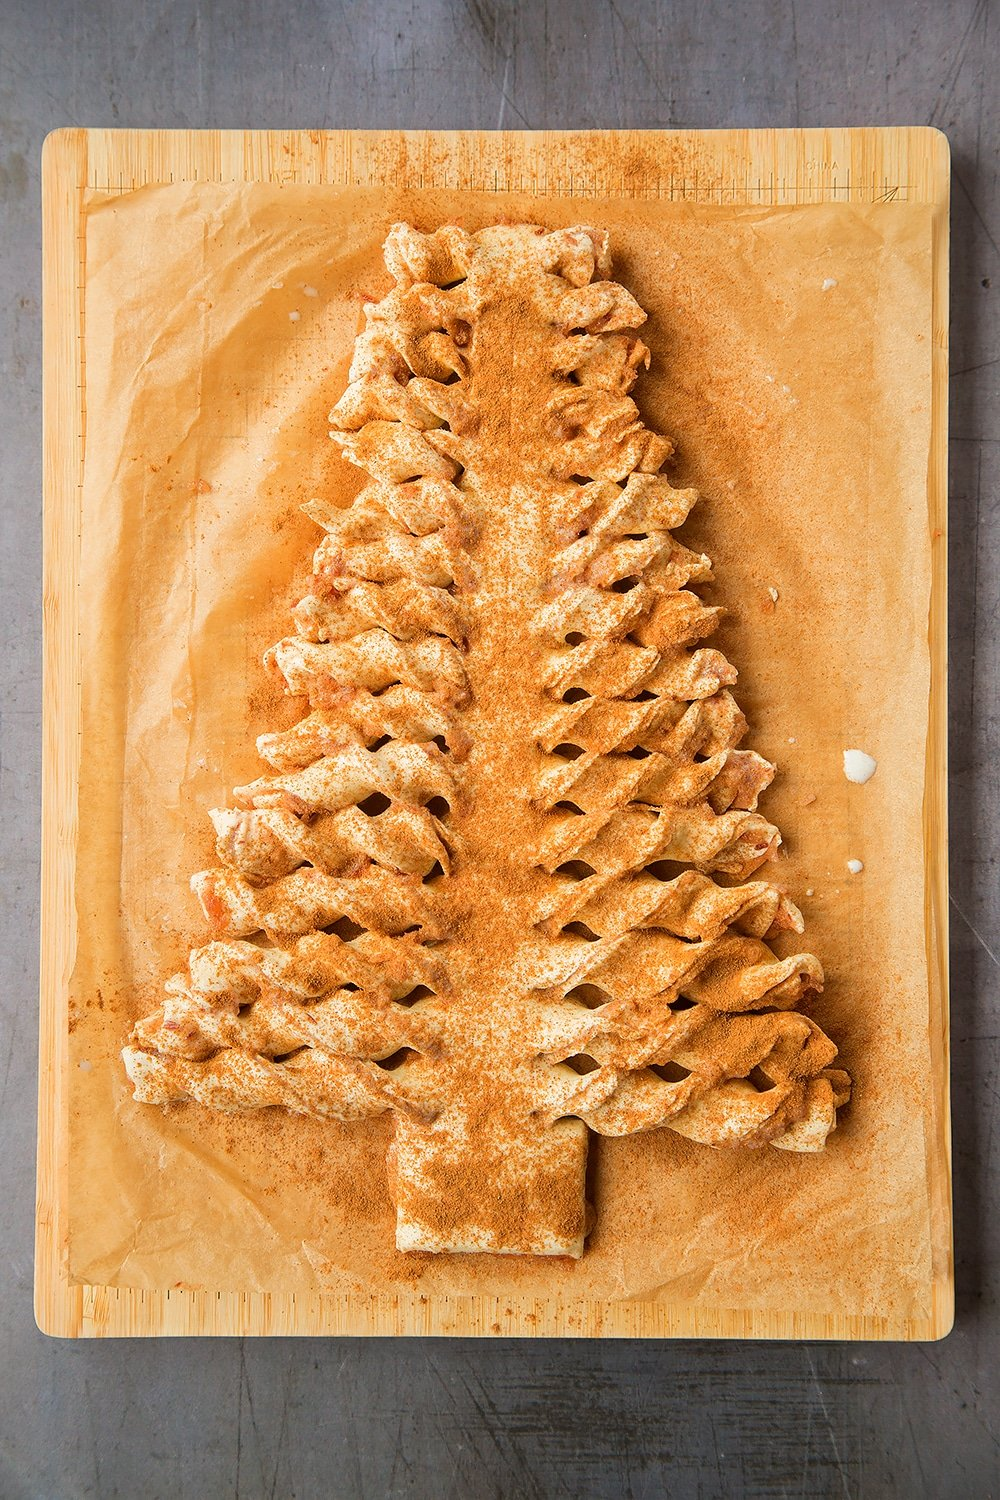 Sprinkle your puff pastry Christmas tree with cinnamon